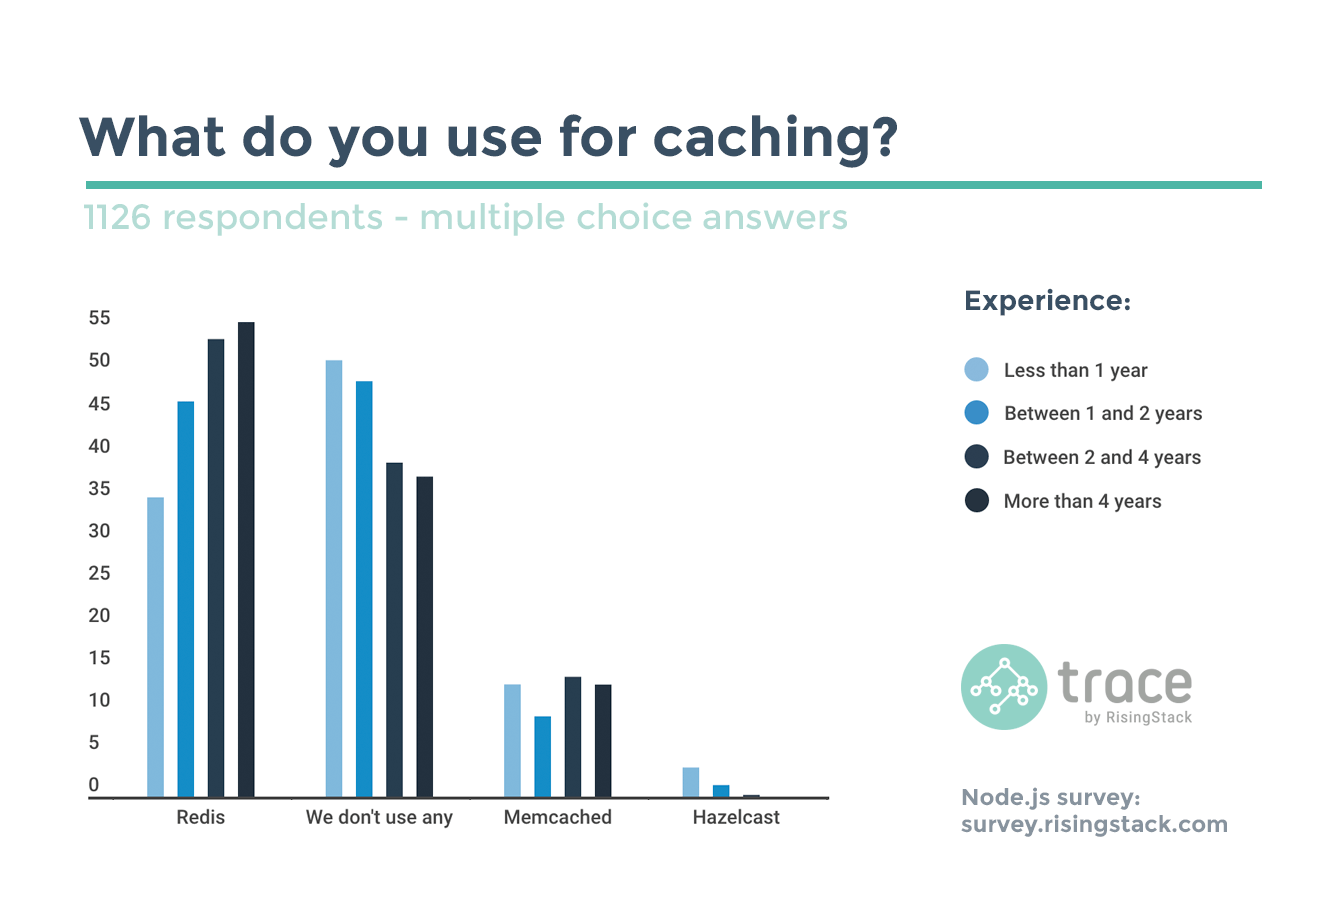 Node.js Survey - Caching usage and developer experience